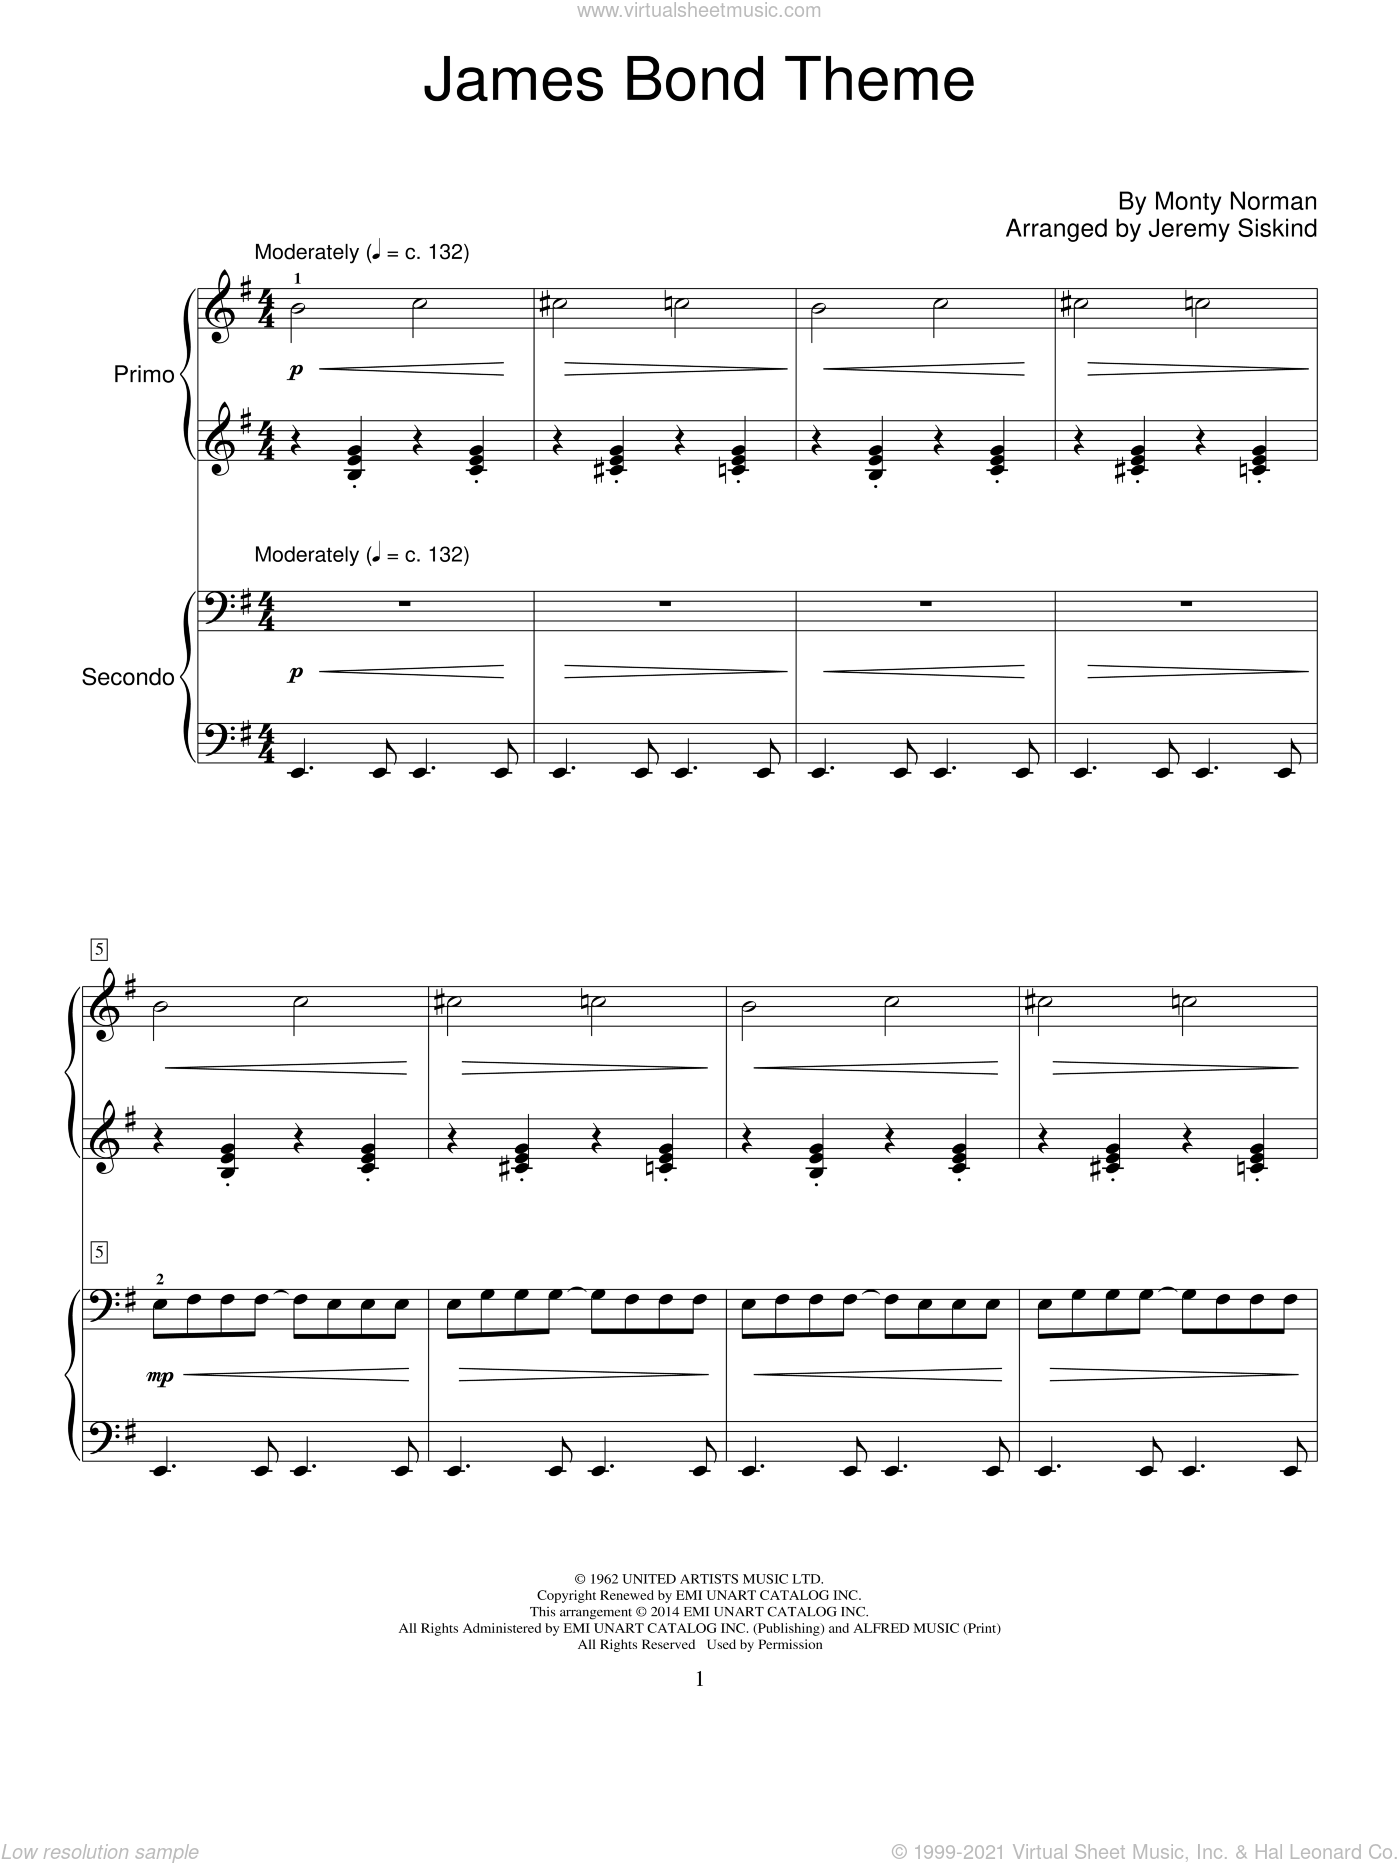 James Bond Theme sheet music for piano four hands by Monty Norman and Jeremy Siskind, intermediate skill level